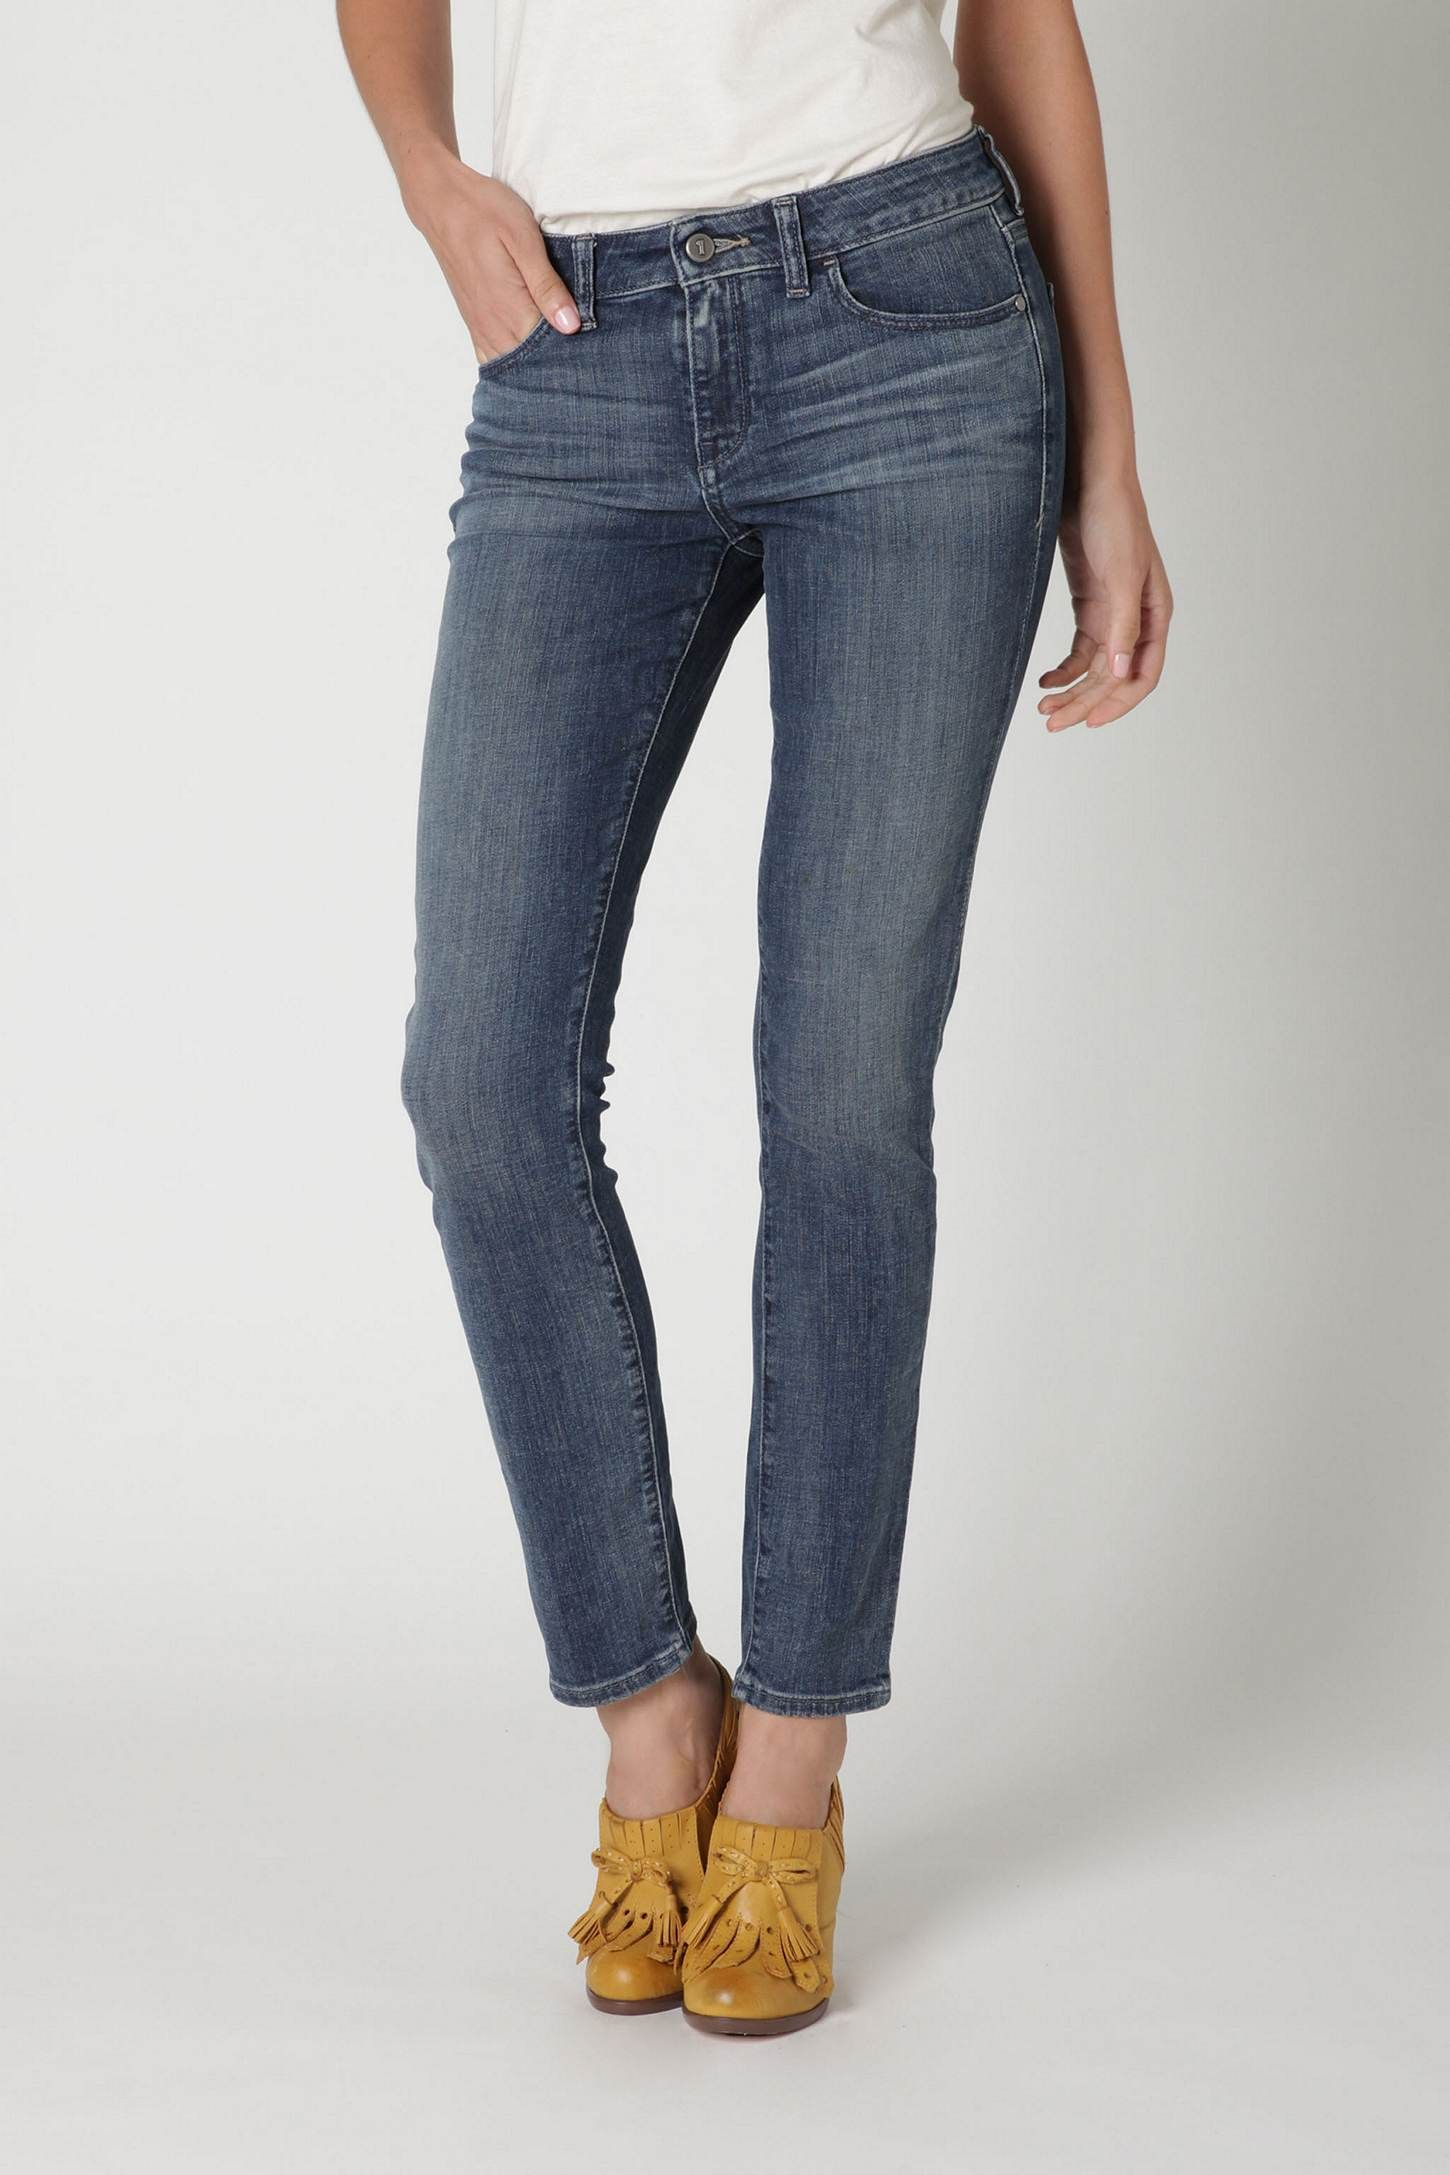 New jeans - these are amazing. A bit of stretch, a high enough rise, a shorter inseam...everyday jeans.